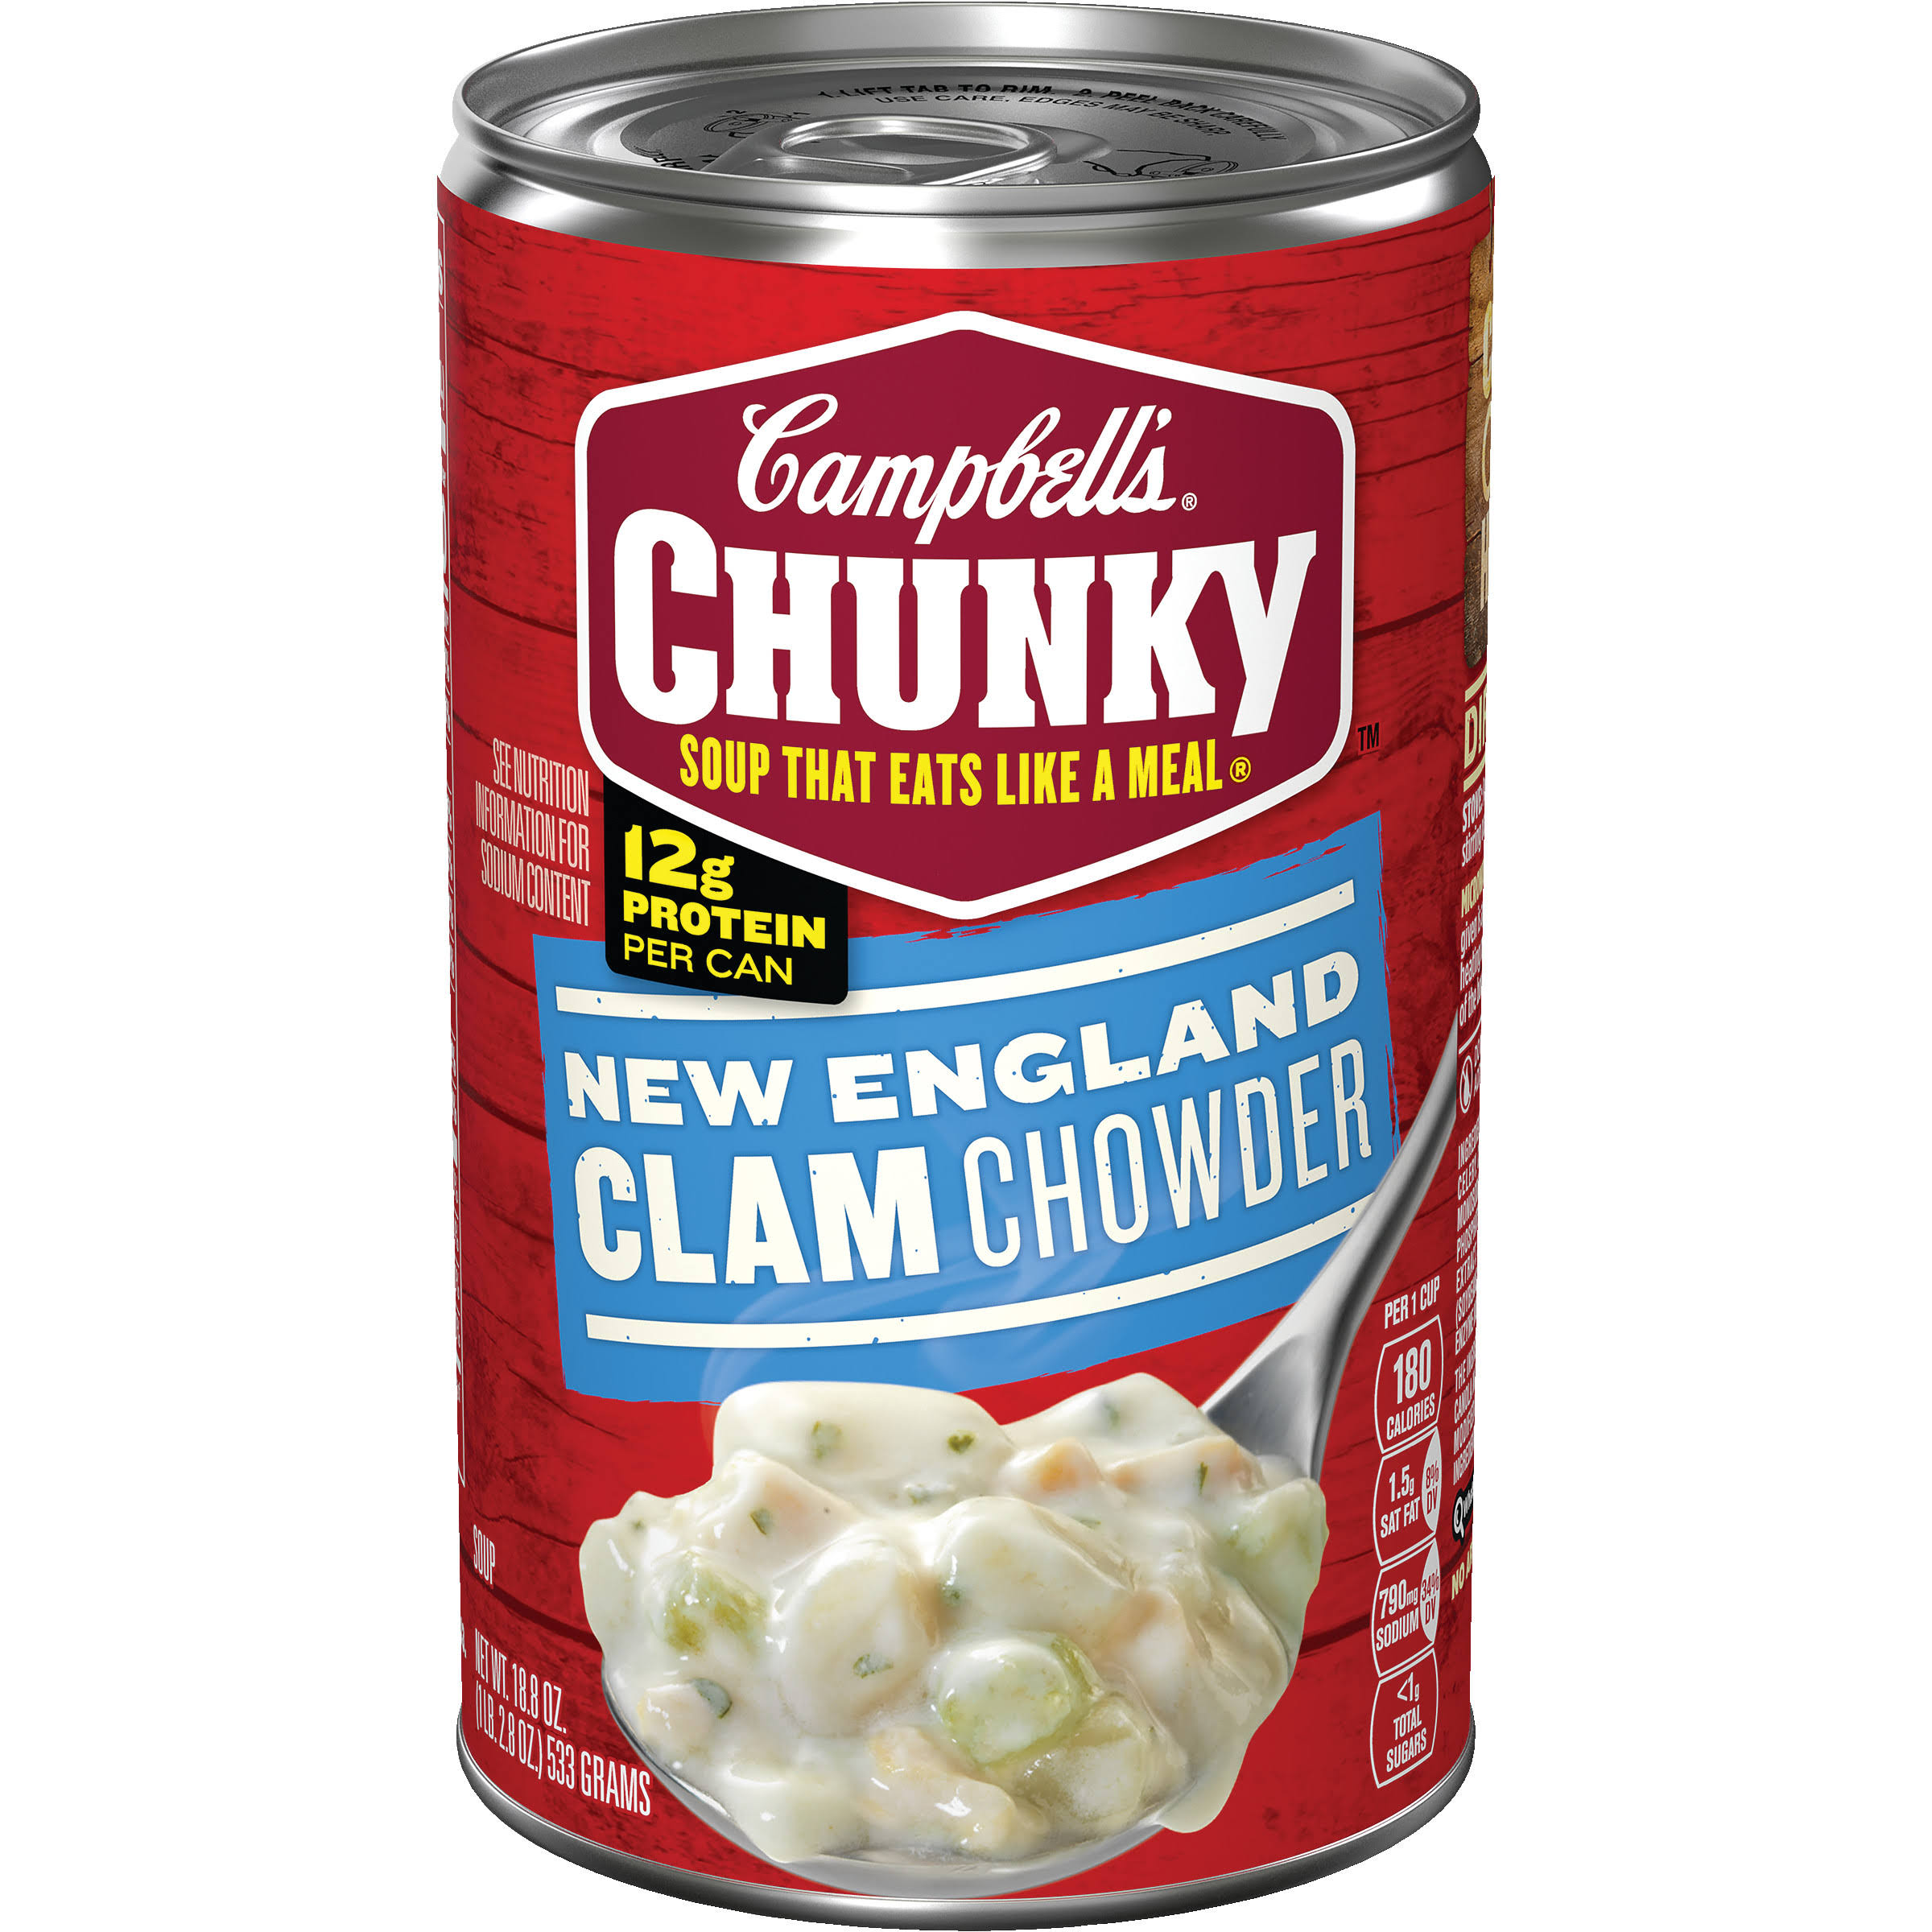 Campbell's Chunky New England Clam Chowder Soup - 18.8oz